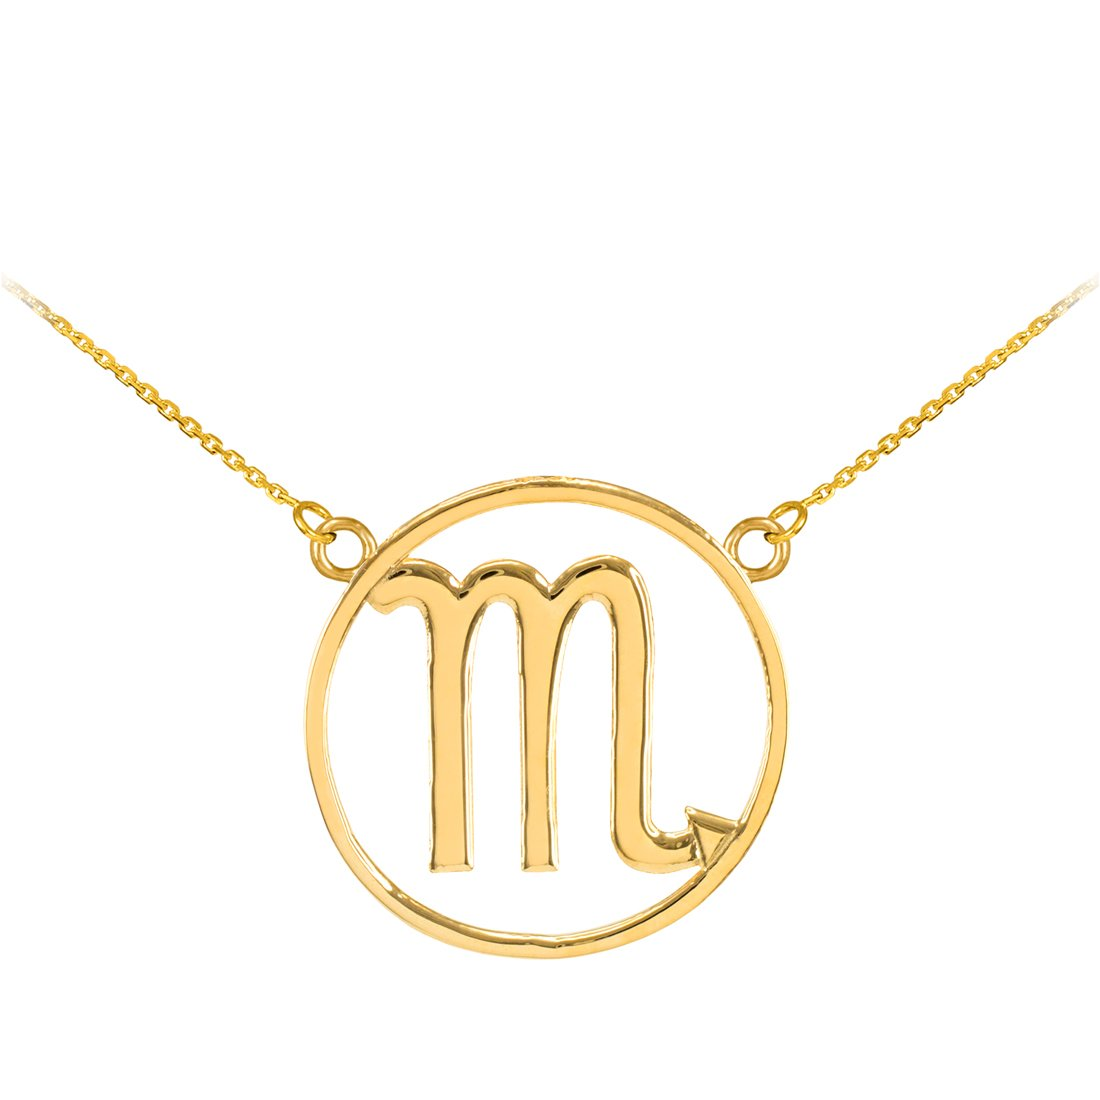 LA BLINGZ 14K Polished Yellow Gold Scorpio Zodiac Sign Necklace